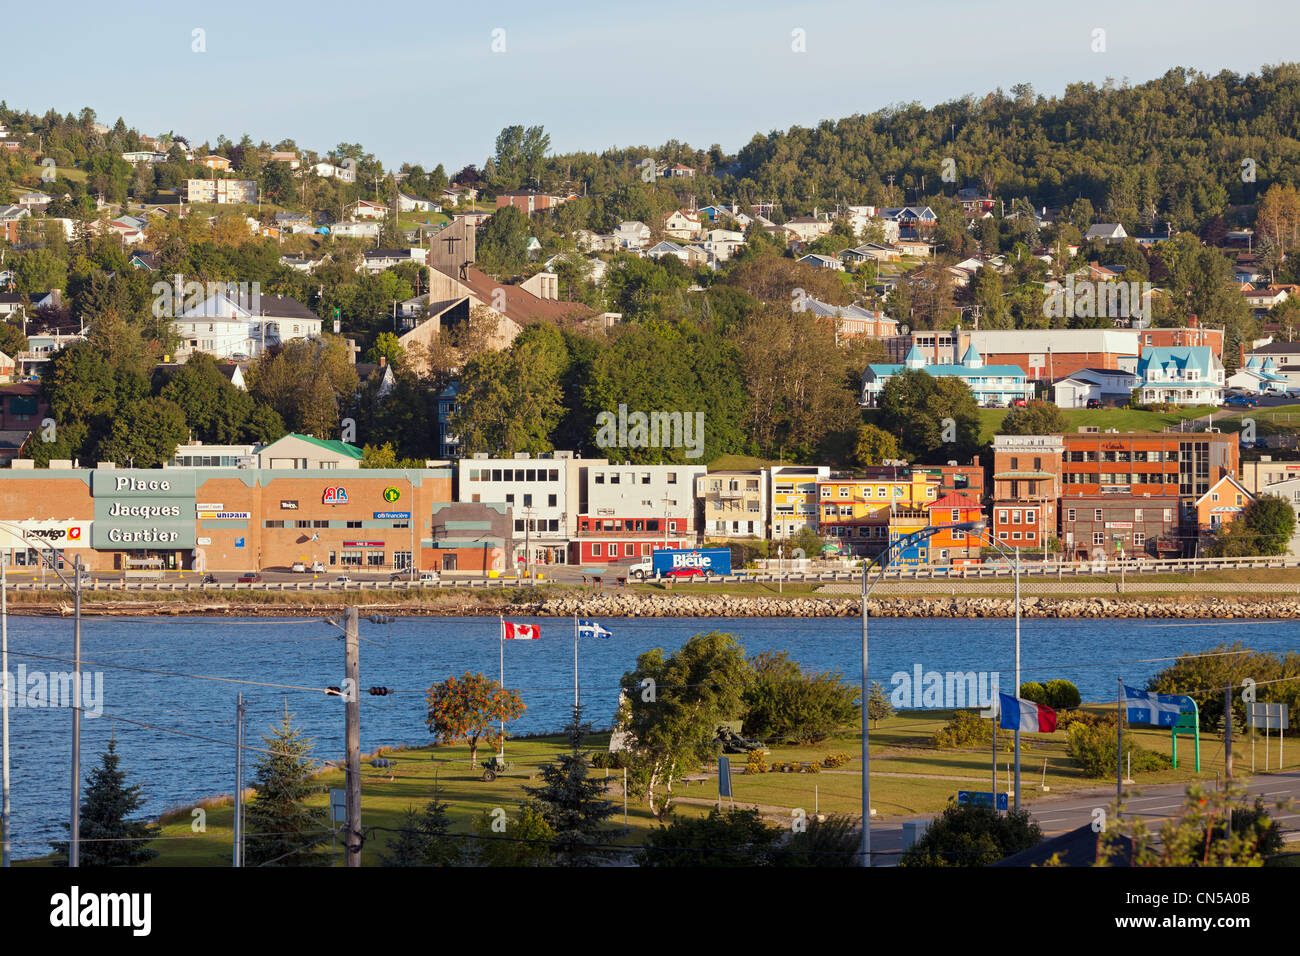 Canada, Quebec Province, Gaspe Peninsula, Gaspe, general view of the city - Stock Image